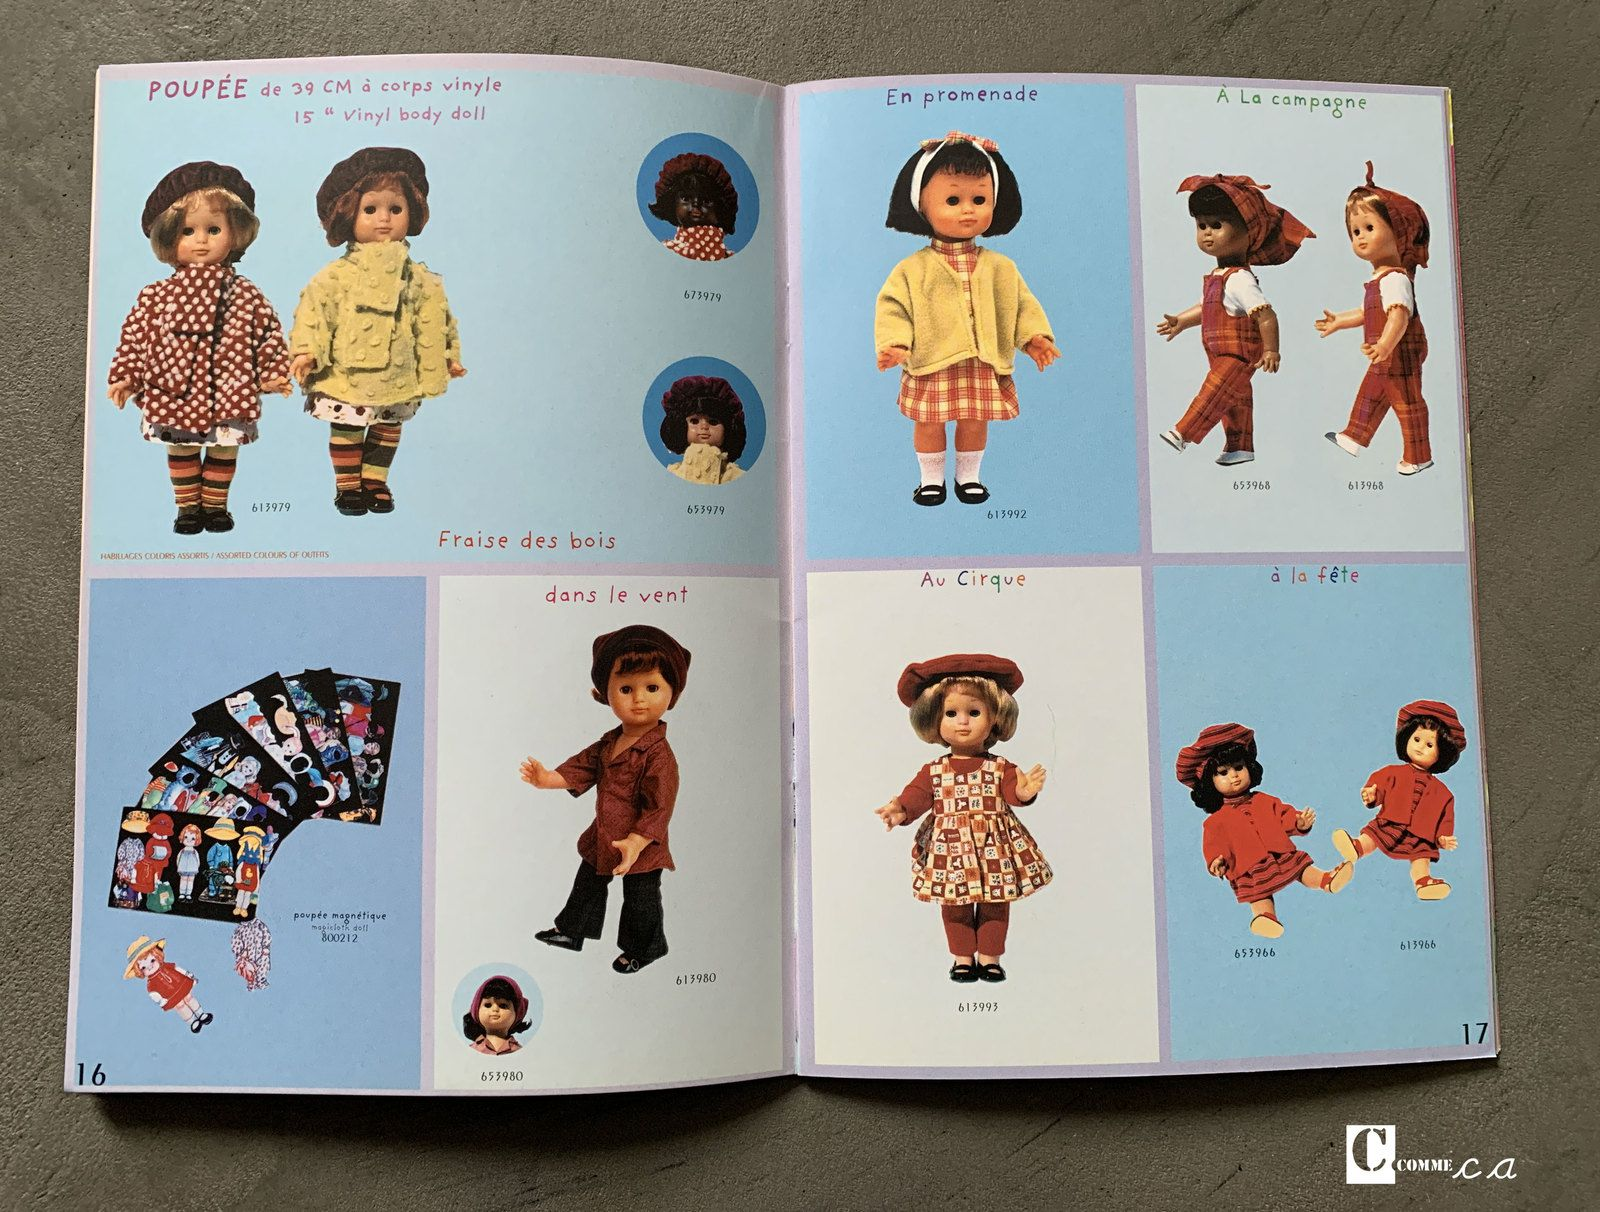 Catalogue Petitcollin 2003-2004